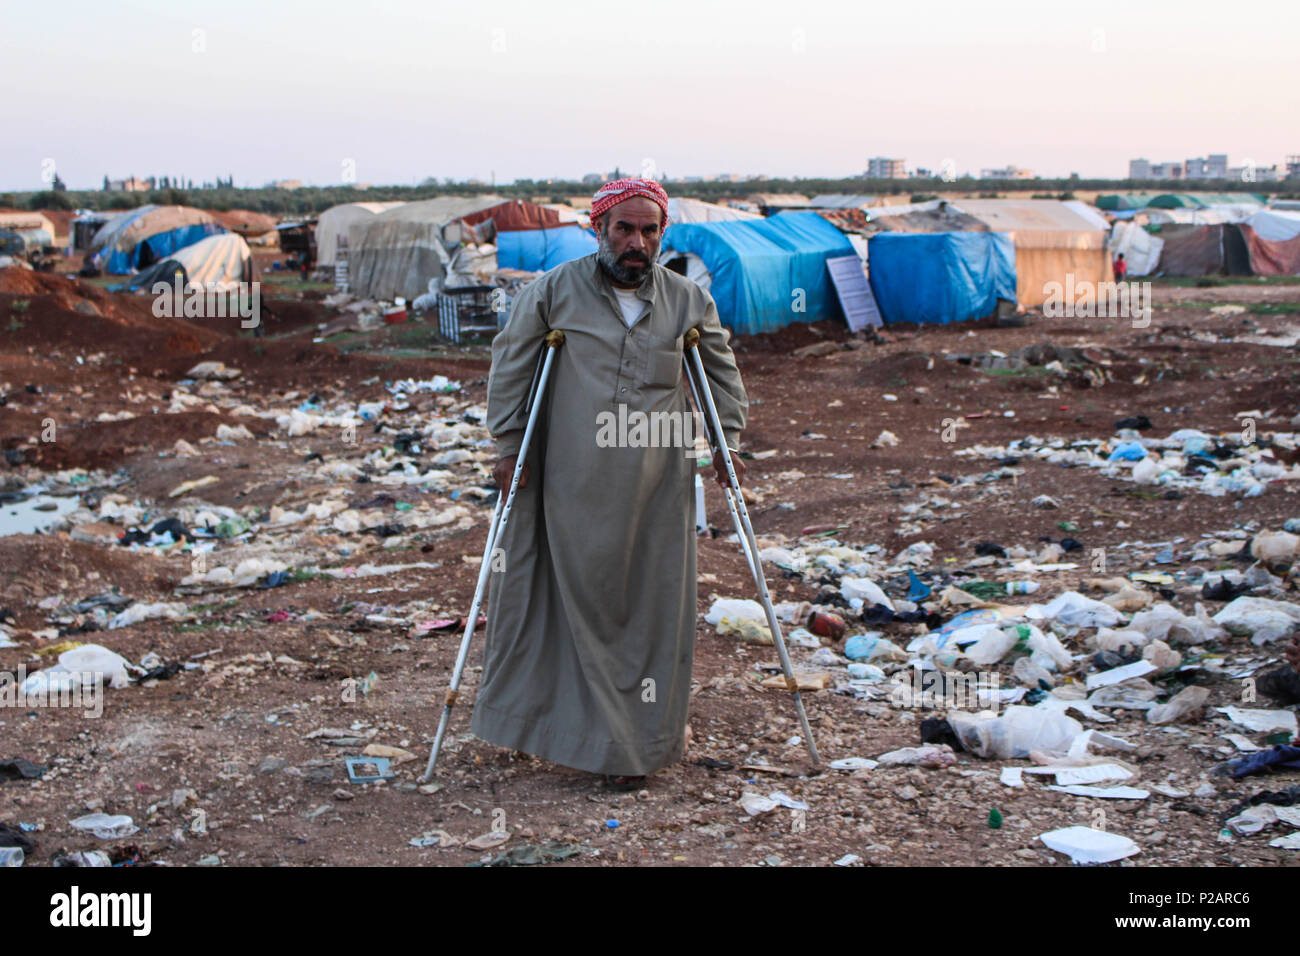 Azaz, Syria. 14th June, 2018. An old man with clutches walking through a dumping area.Eid al-Fitr atmosphere in Al-Tadhamon camp in the countryside of Azaz city where people live displaced from Aleppo city and the countryside. Credit: Muhmmad Al-Najjar/SOPA Images/ZUMA Wire/Alamy Live News - Stock Image